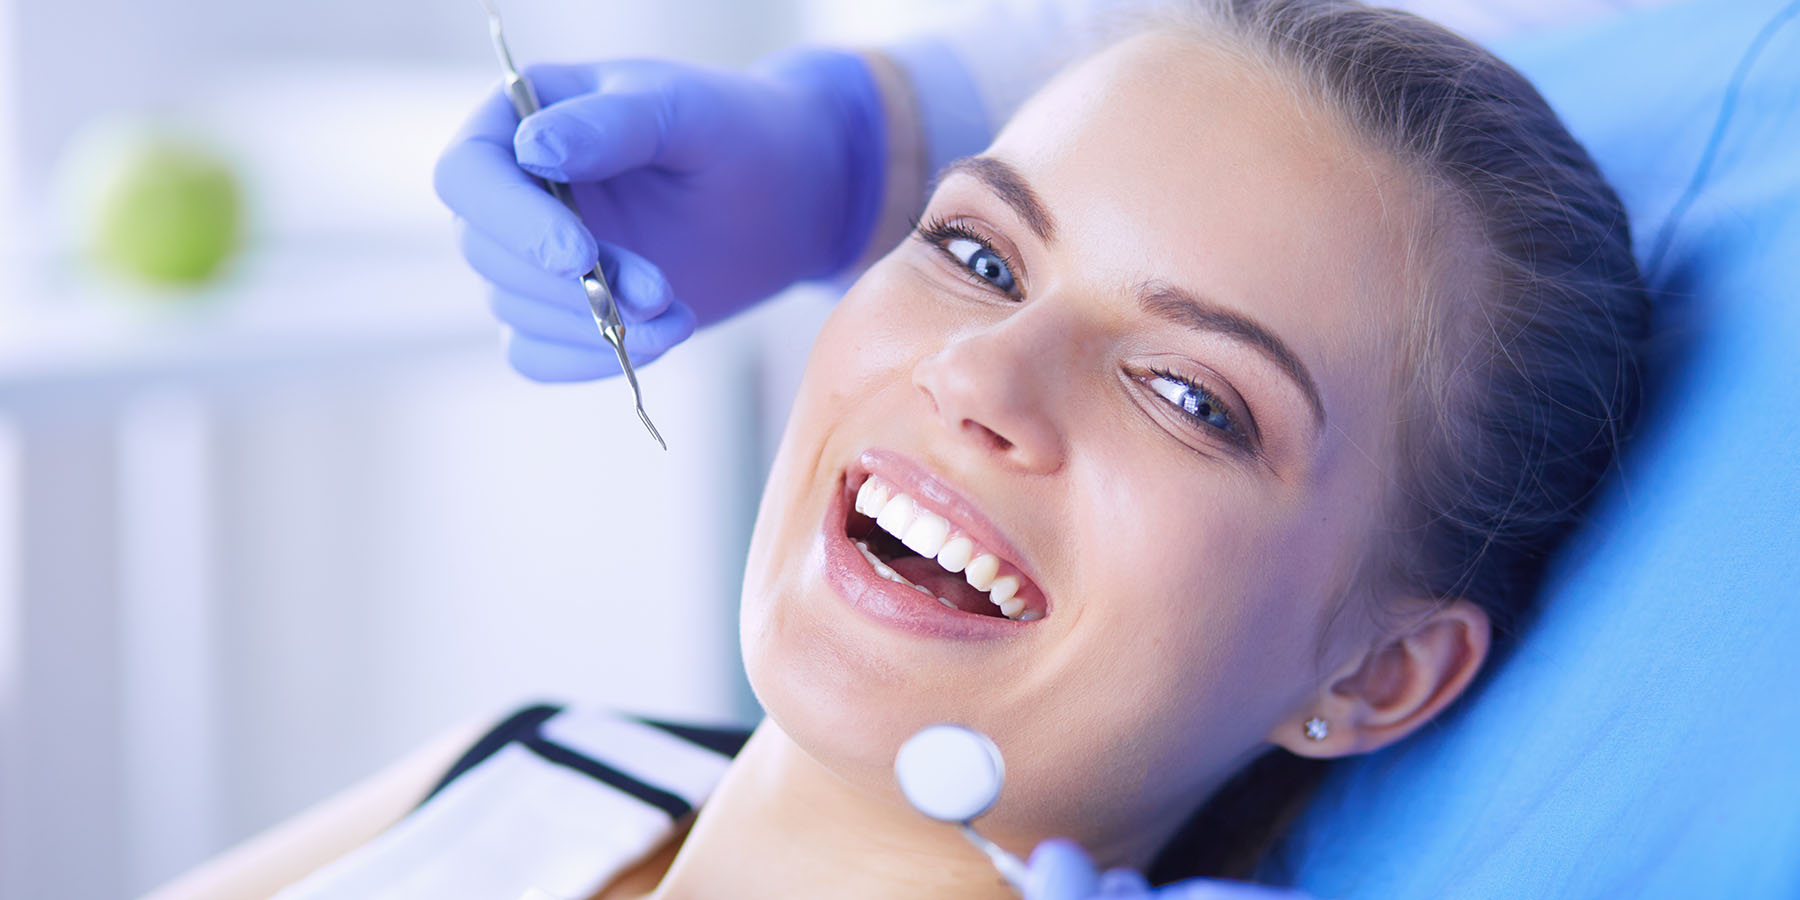 We Offer Preventative and TMJ Treatment in Pembroke